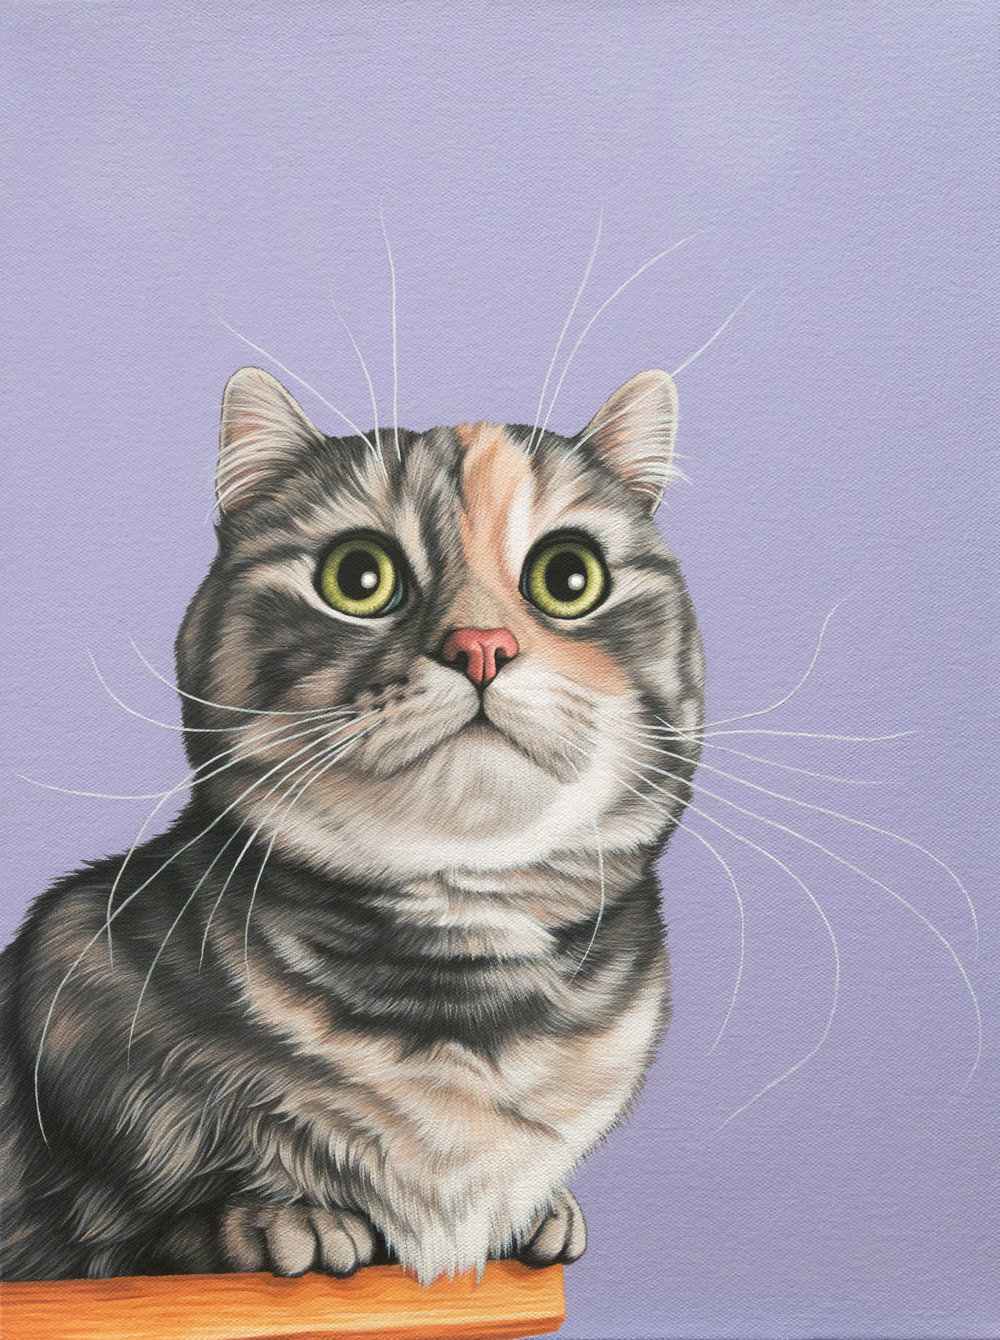 """Ginny"", latex enamel on canvas, 12"" x 16"", 2017"